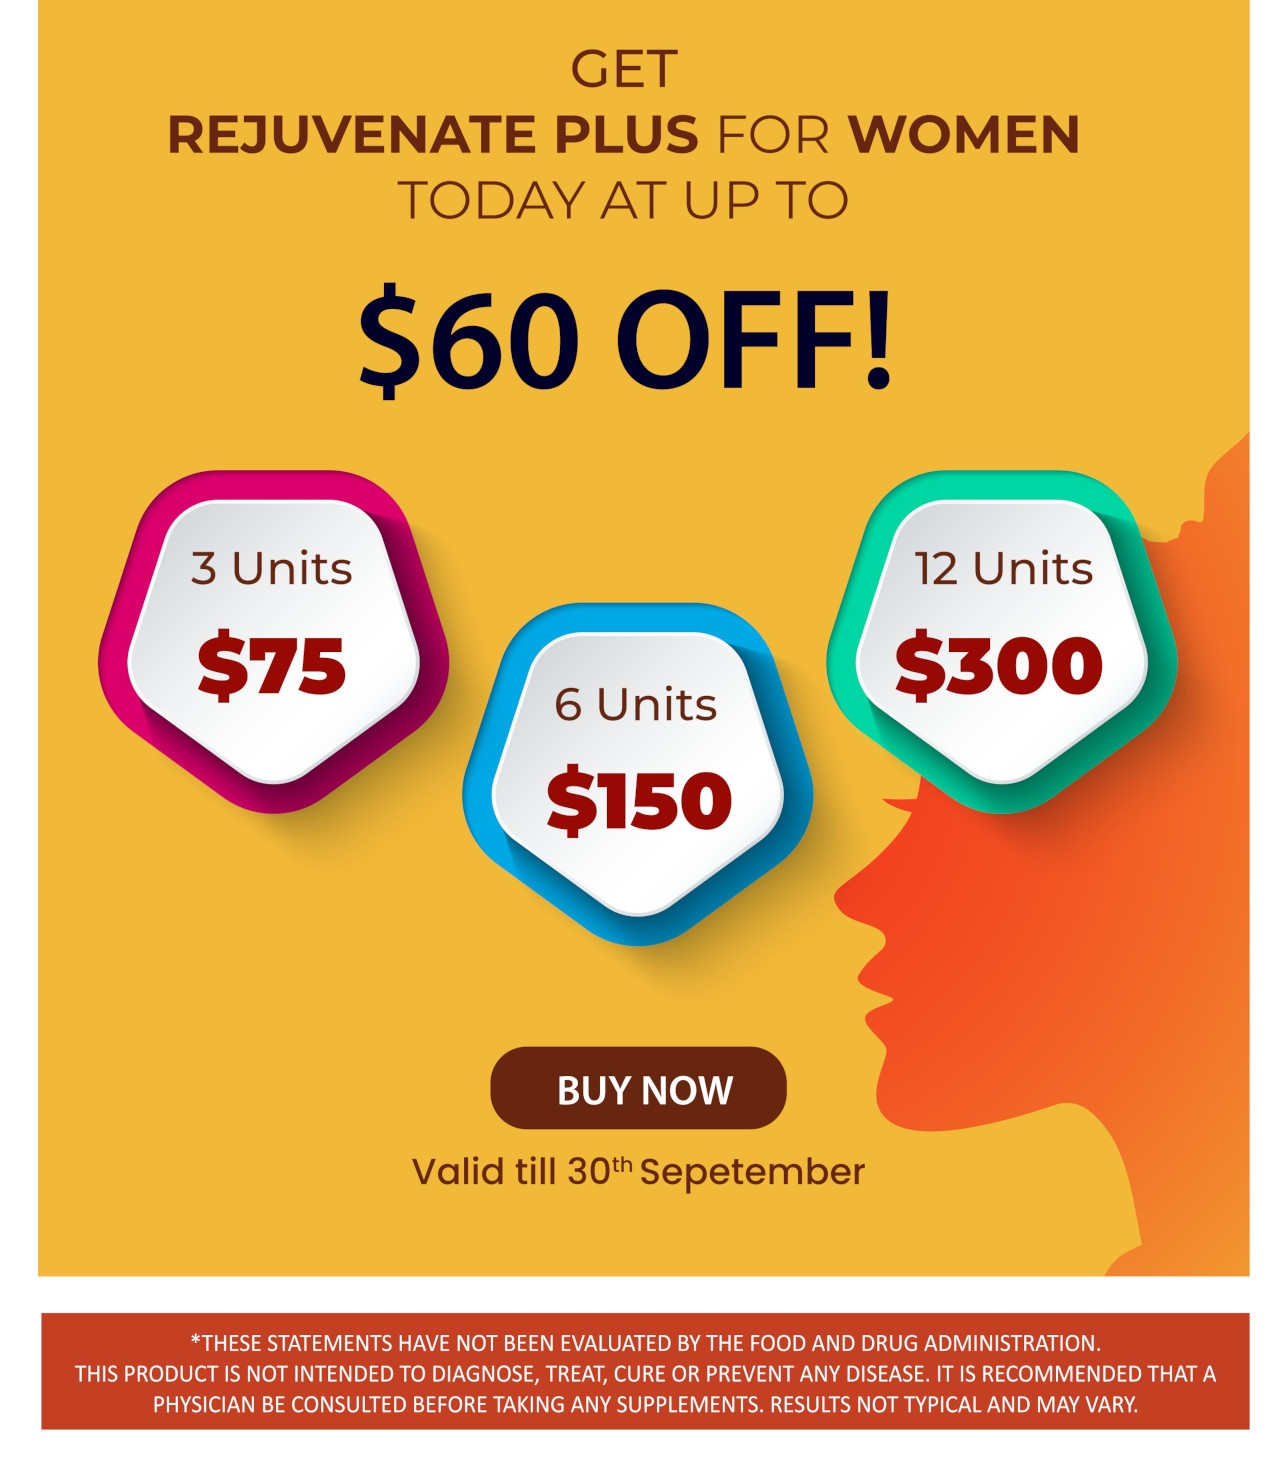 Up to 60$ Off Of Rejuvenate Plus for Women!